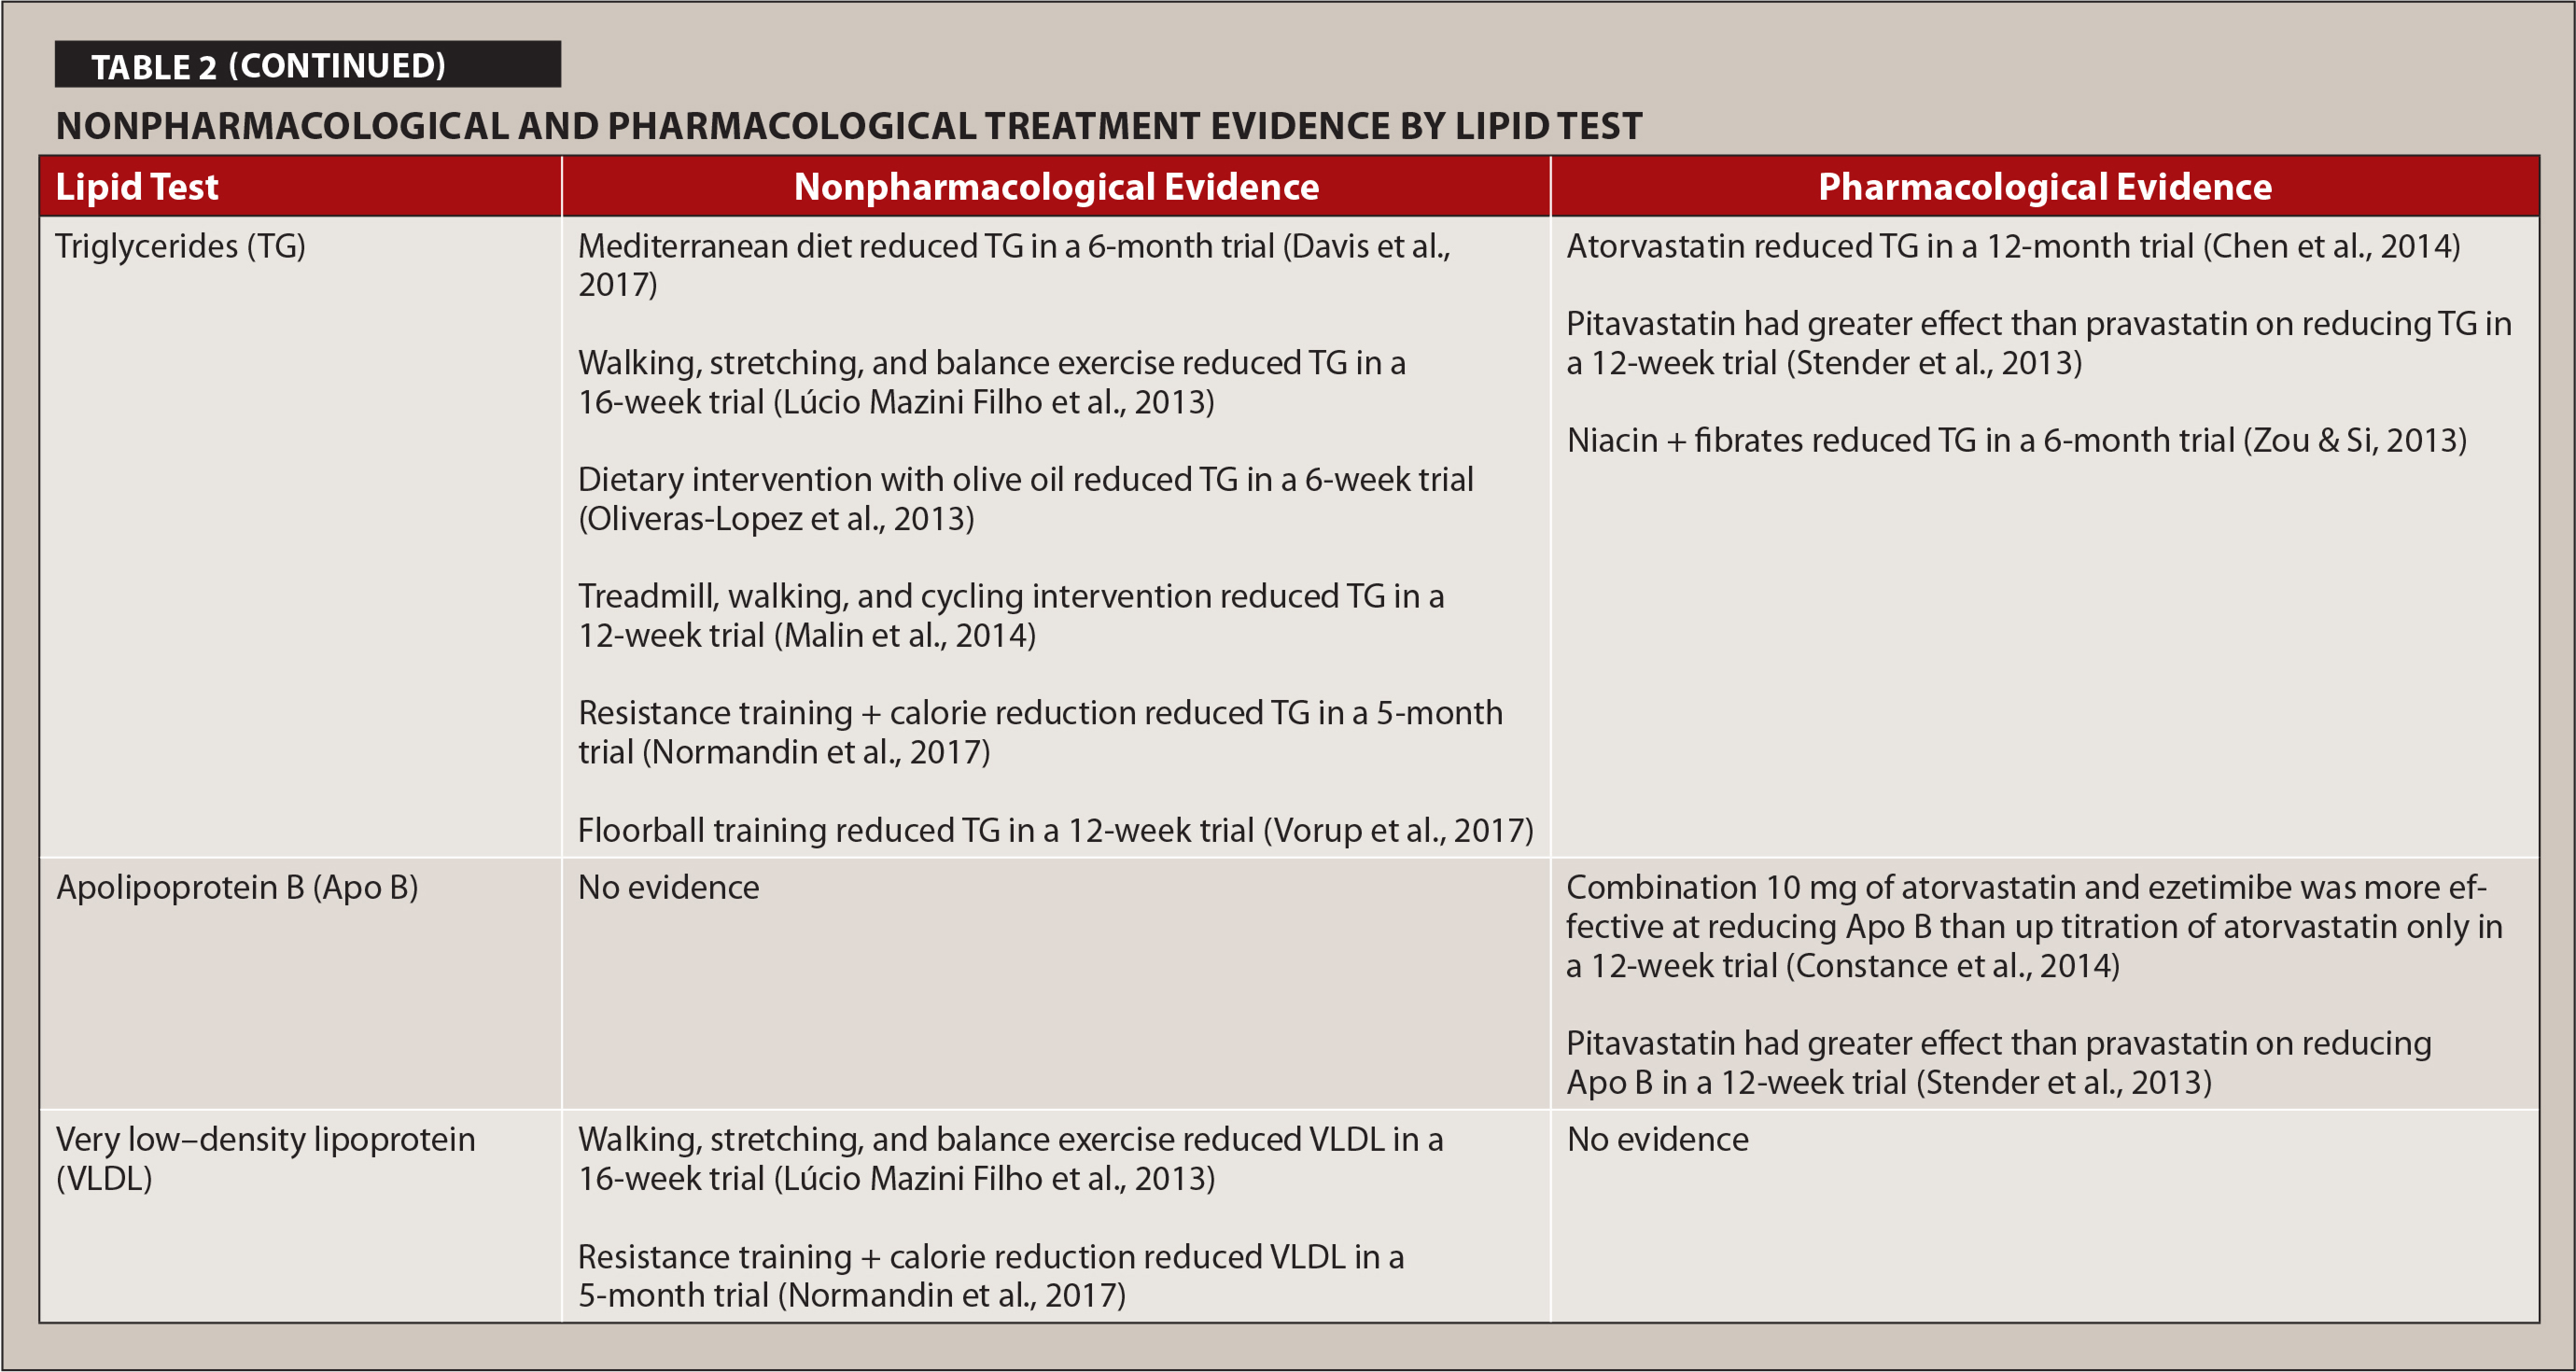 Nonpharmacological and Pharmacological Treatment Evidence by Lipid Test